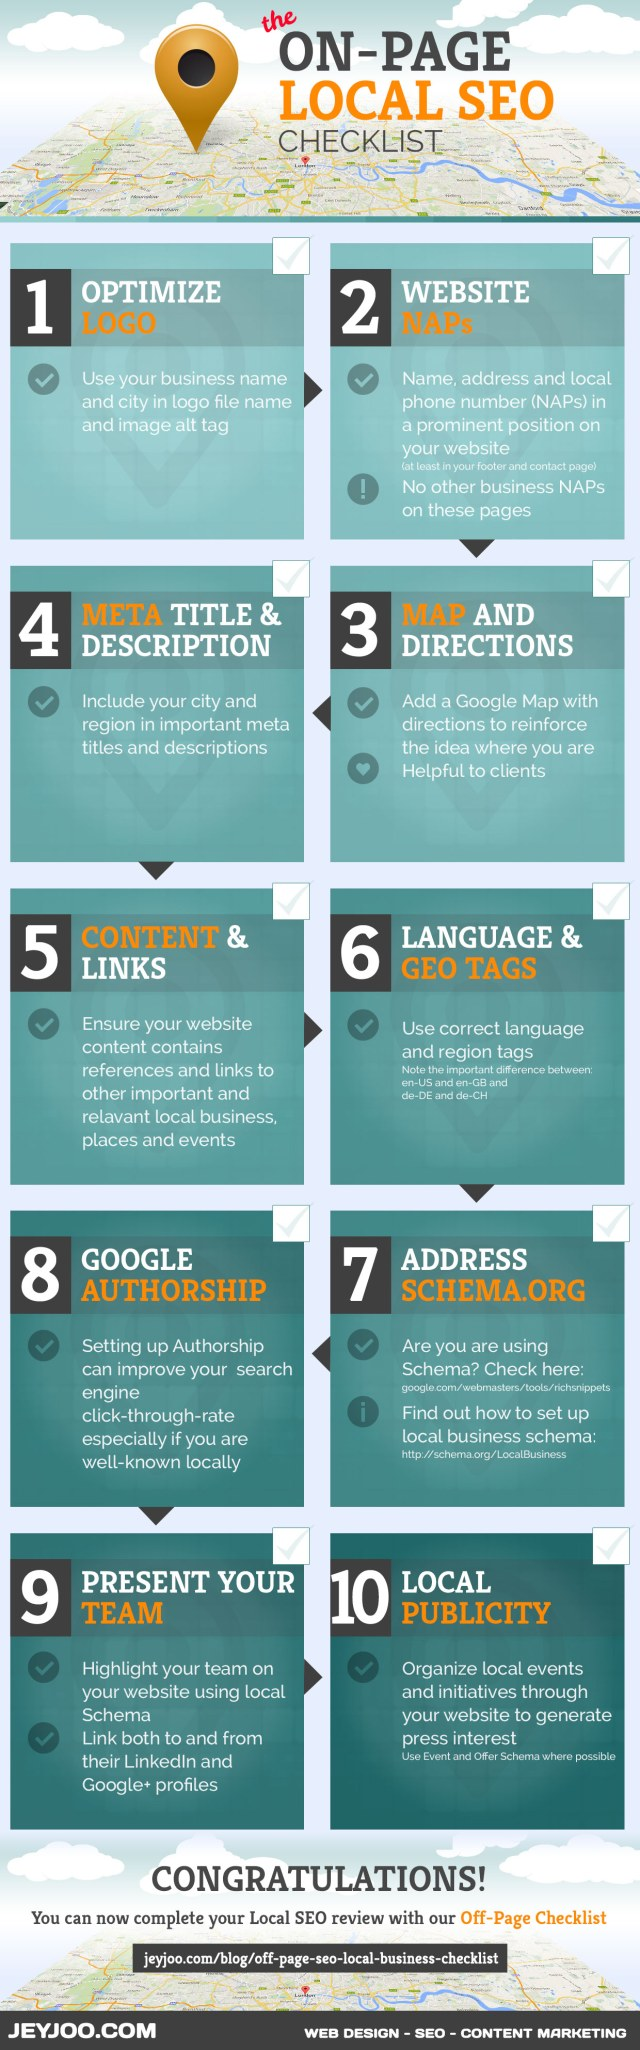 On-Page Local SEO infographic